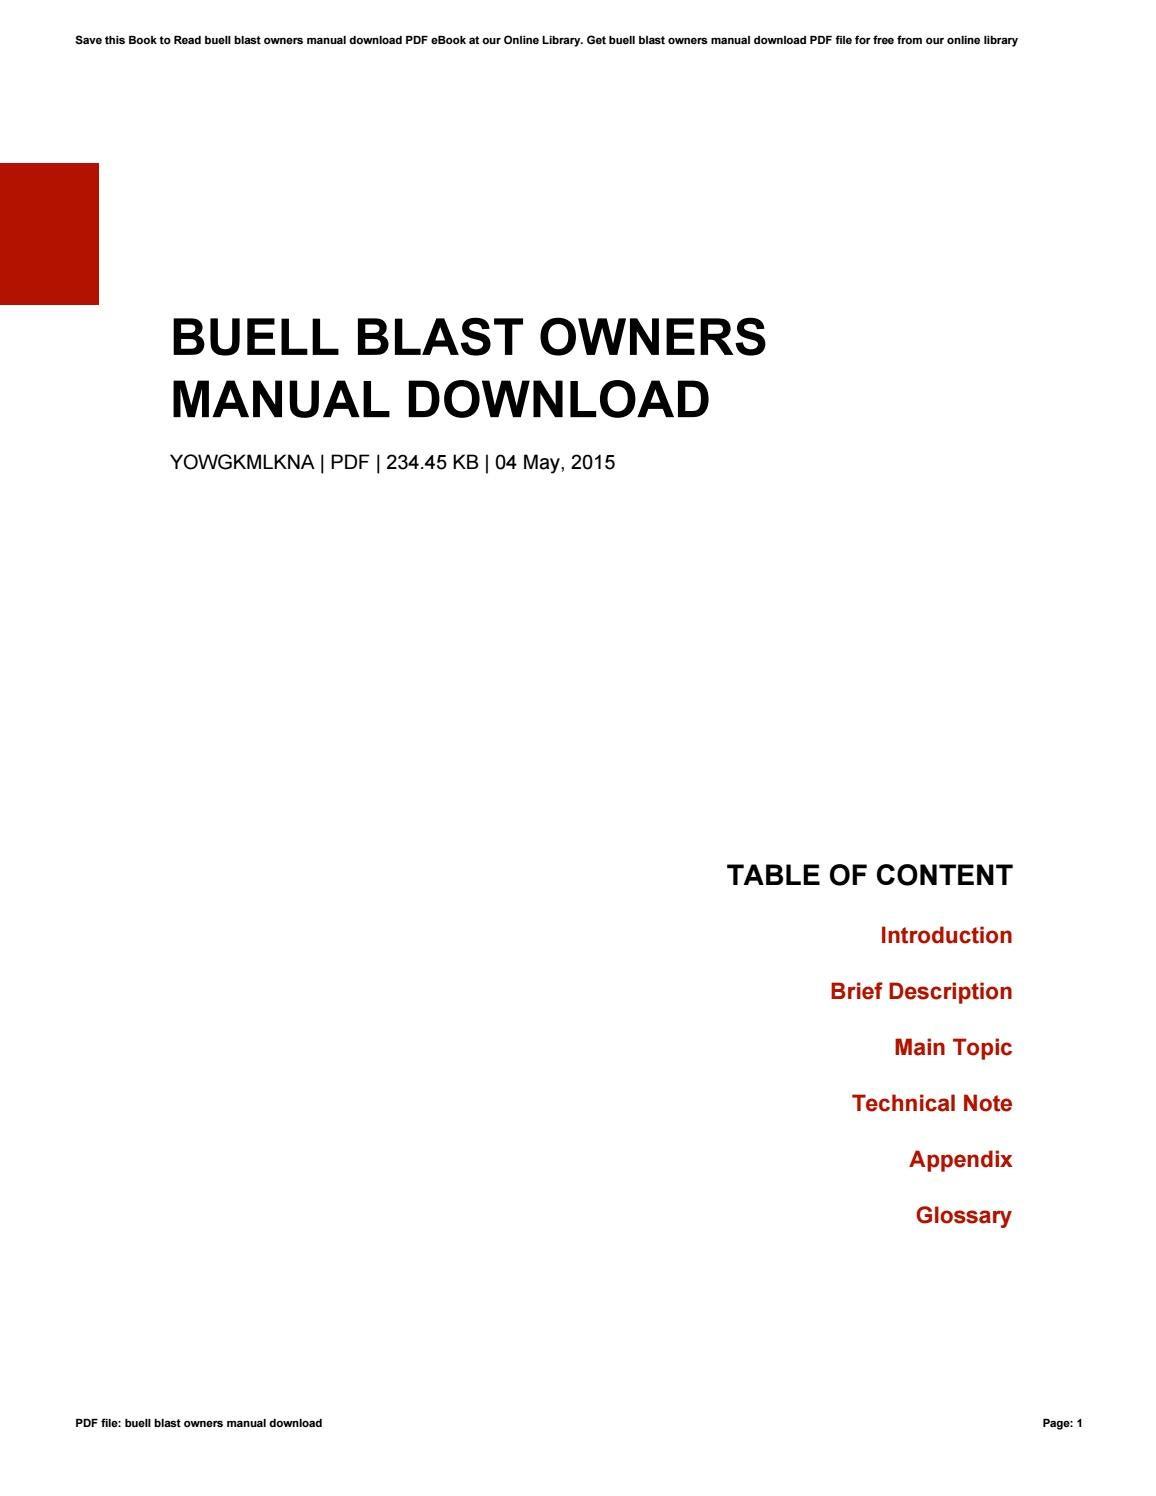 Buell blast owners manual download by JohnGallagher2866